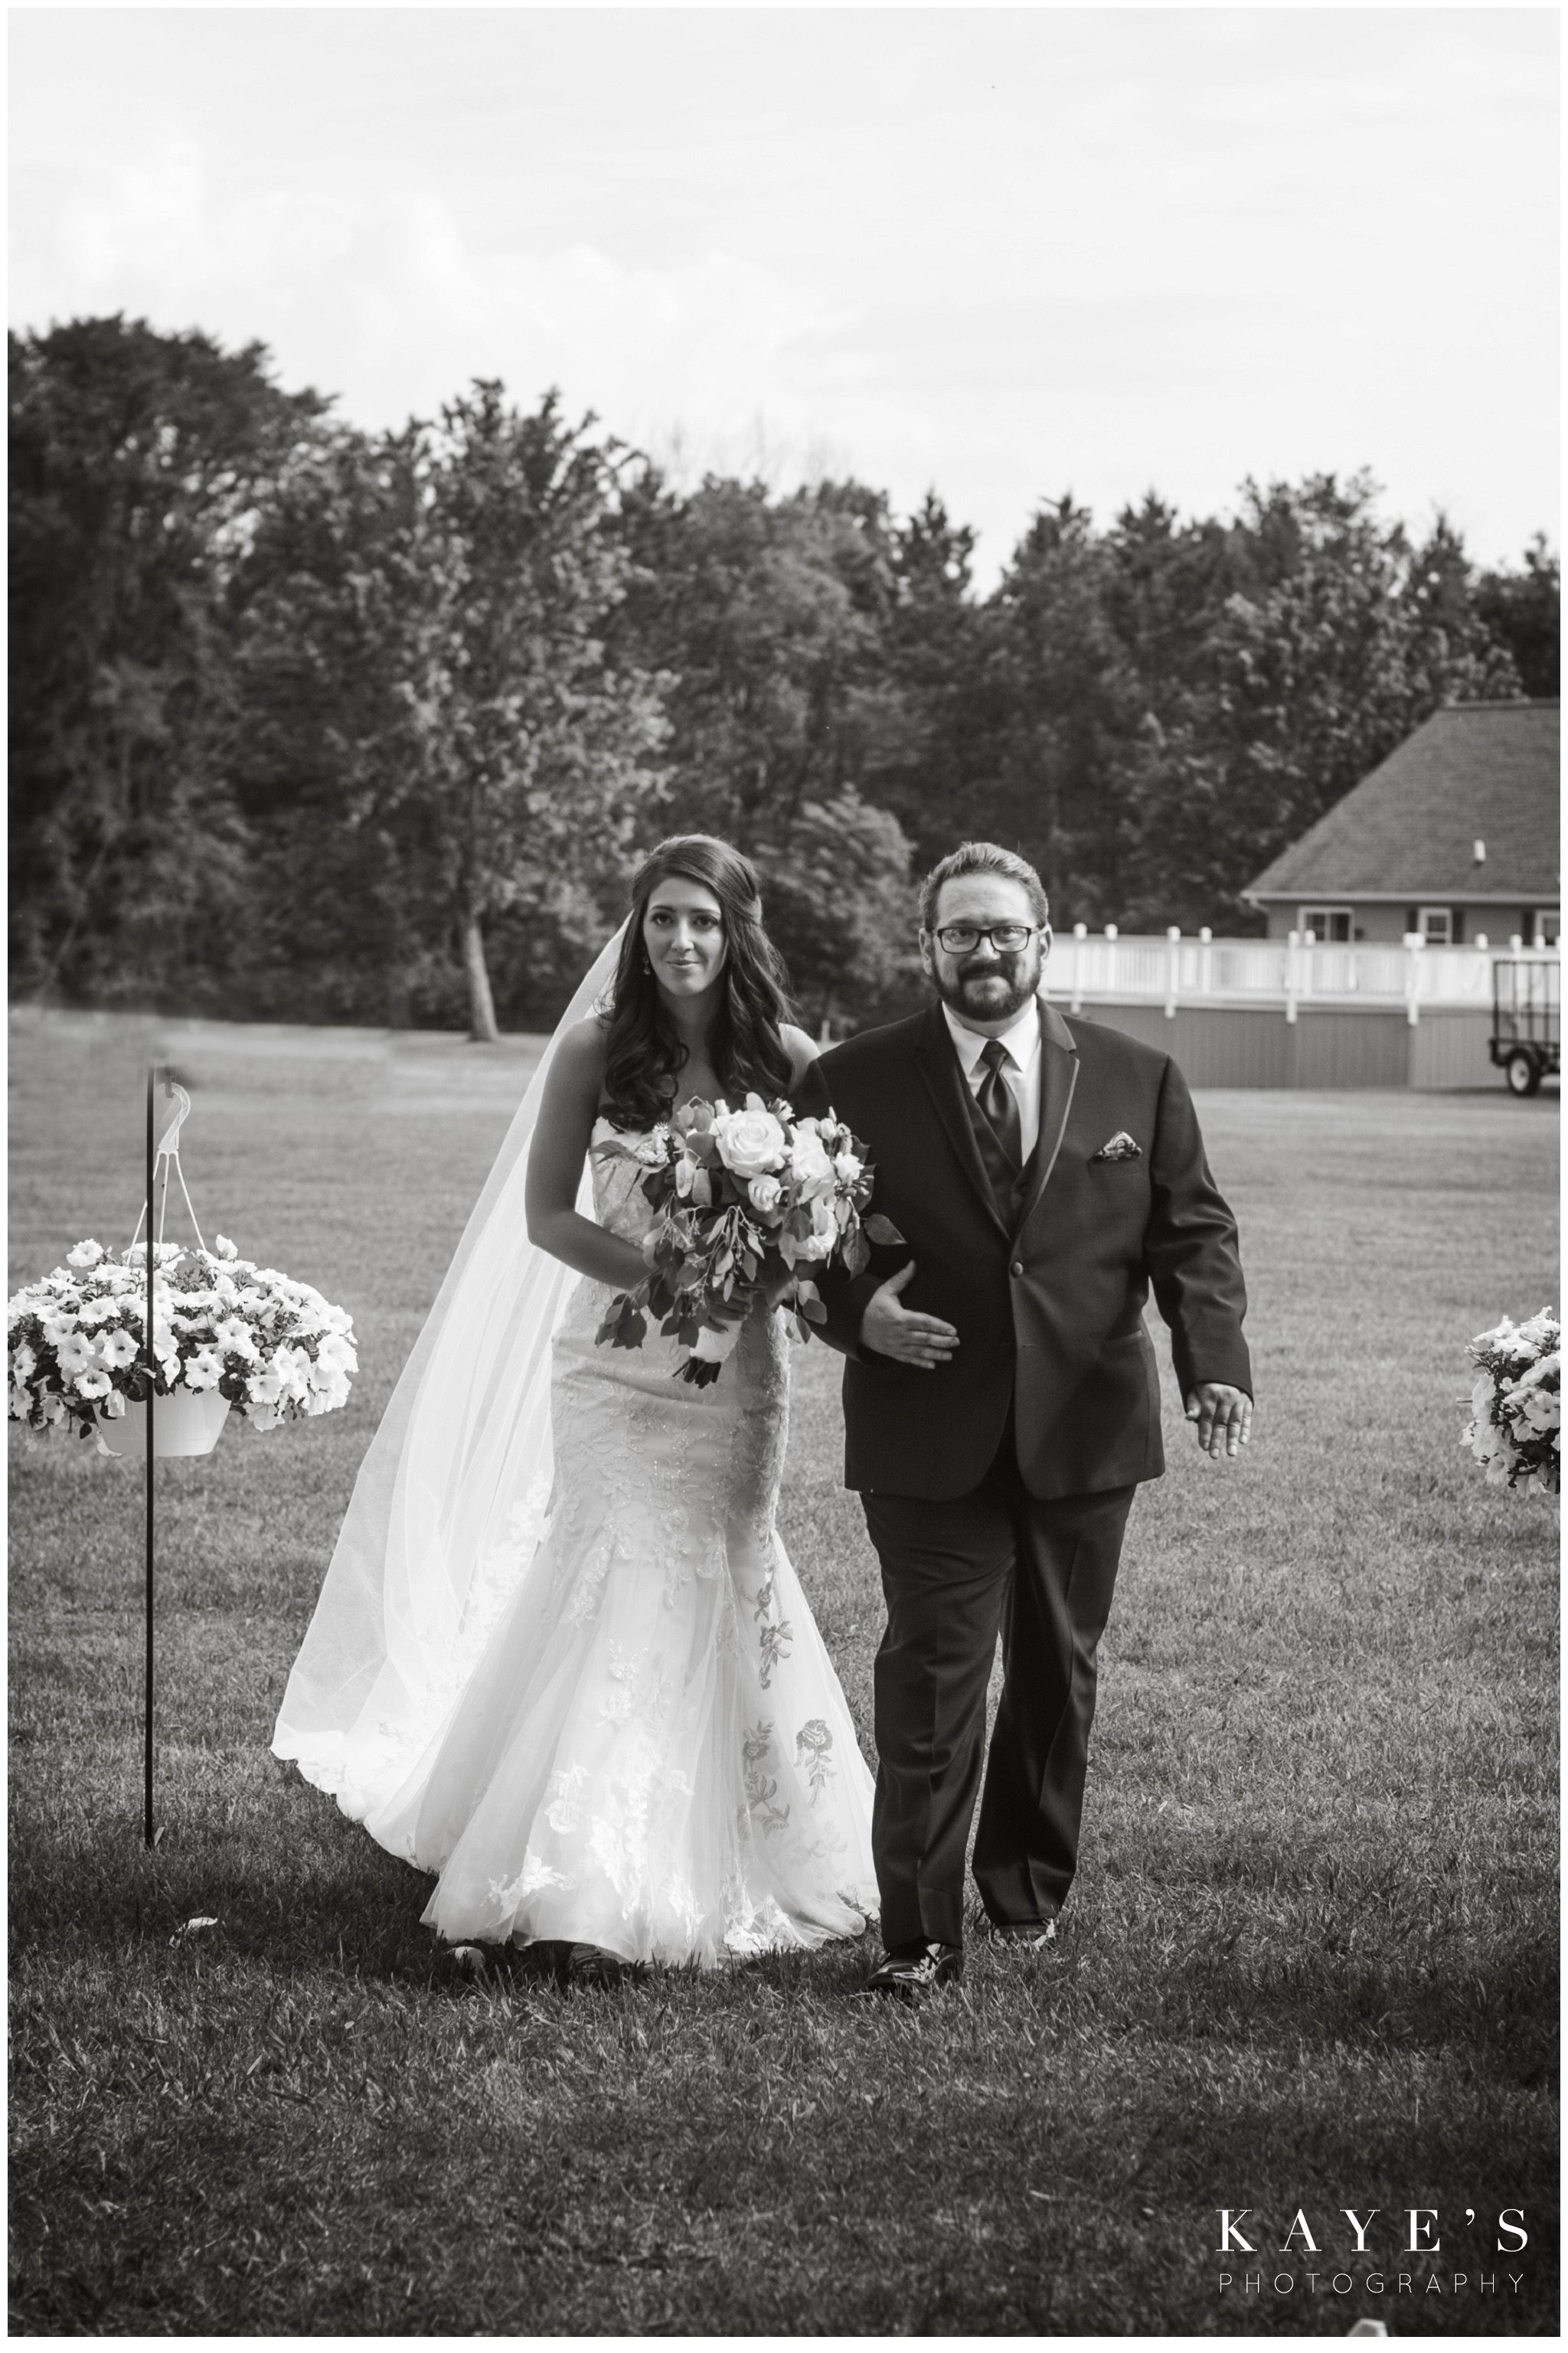 Kayes Photography- howell-michigan-wedding-photographer_0692.jpg